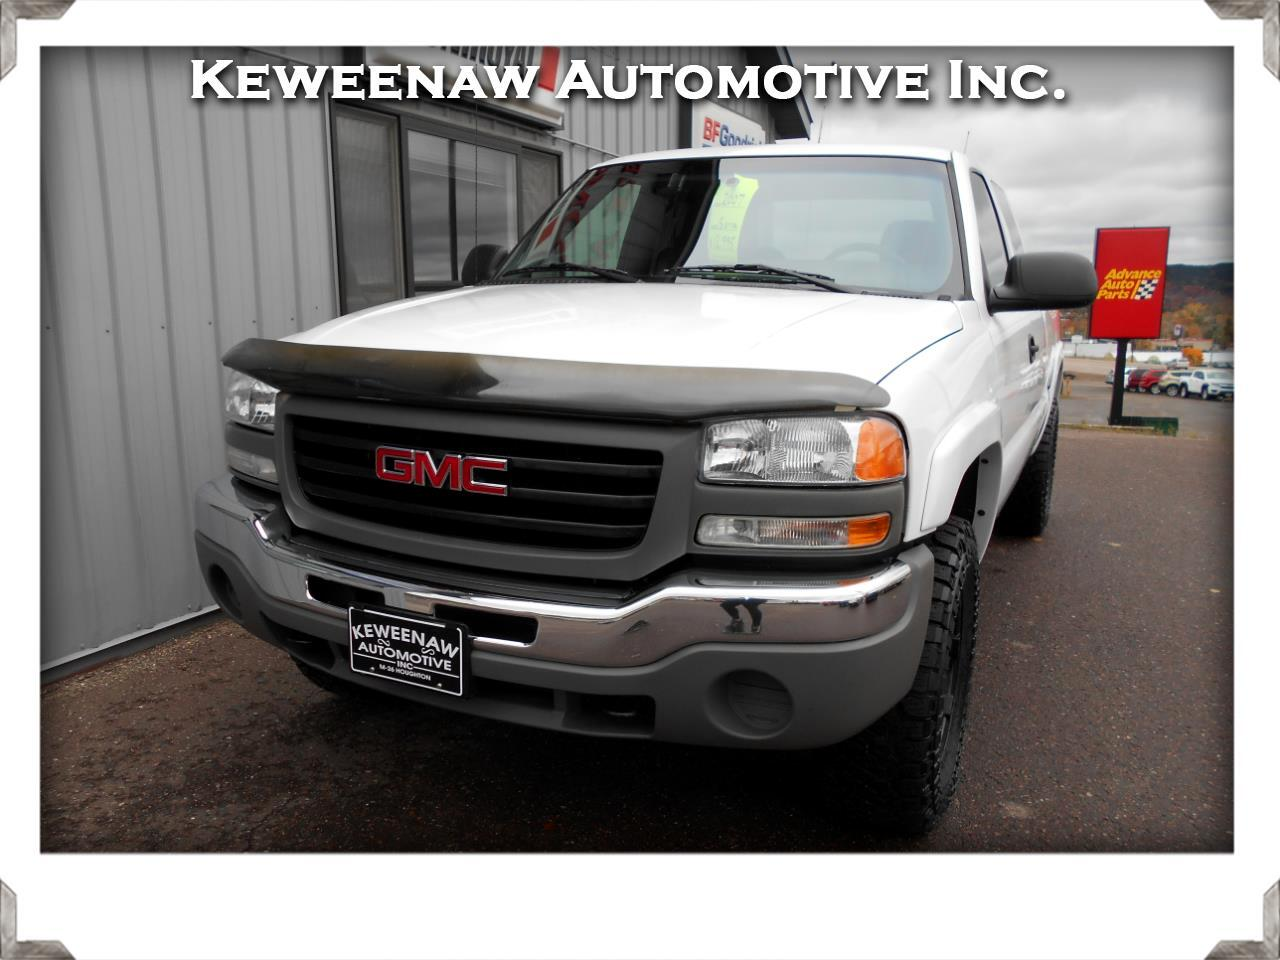 "2007 GMC Sierra 1500 Classic 4WD Ext Cab 143.5"" Work Truck"